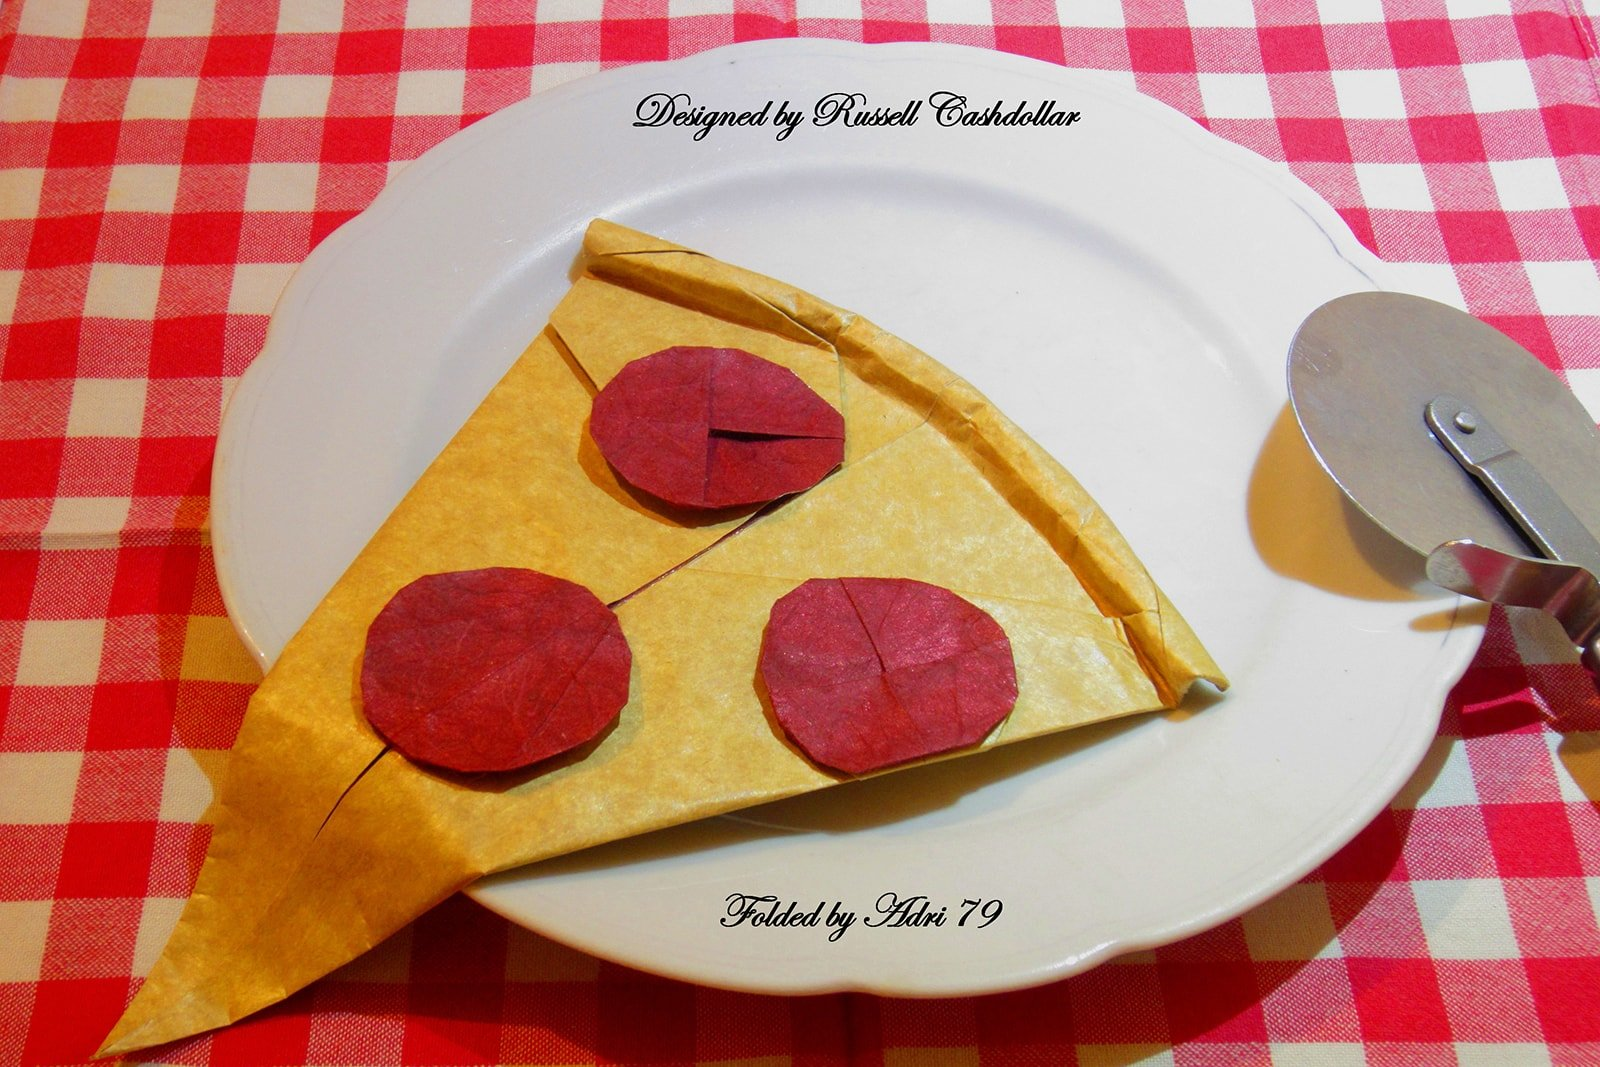 delicious looking origami food that you can almost taste